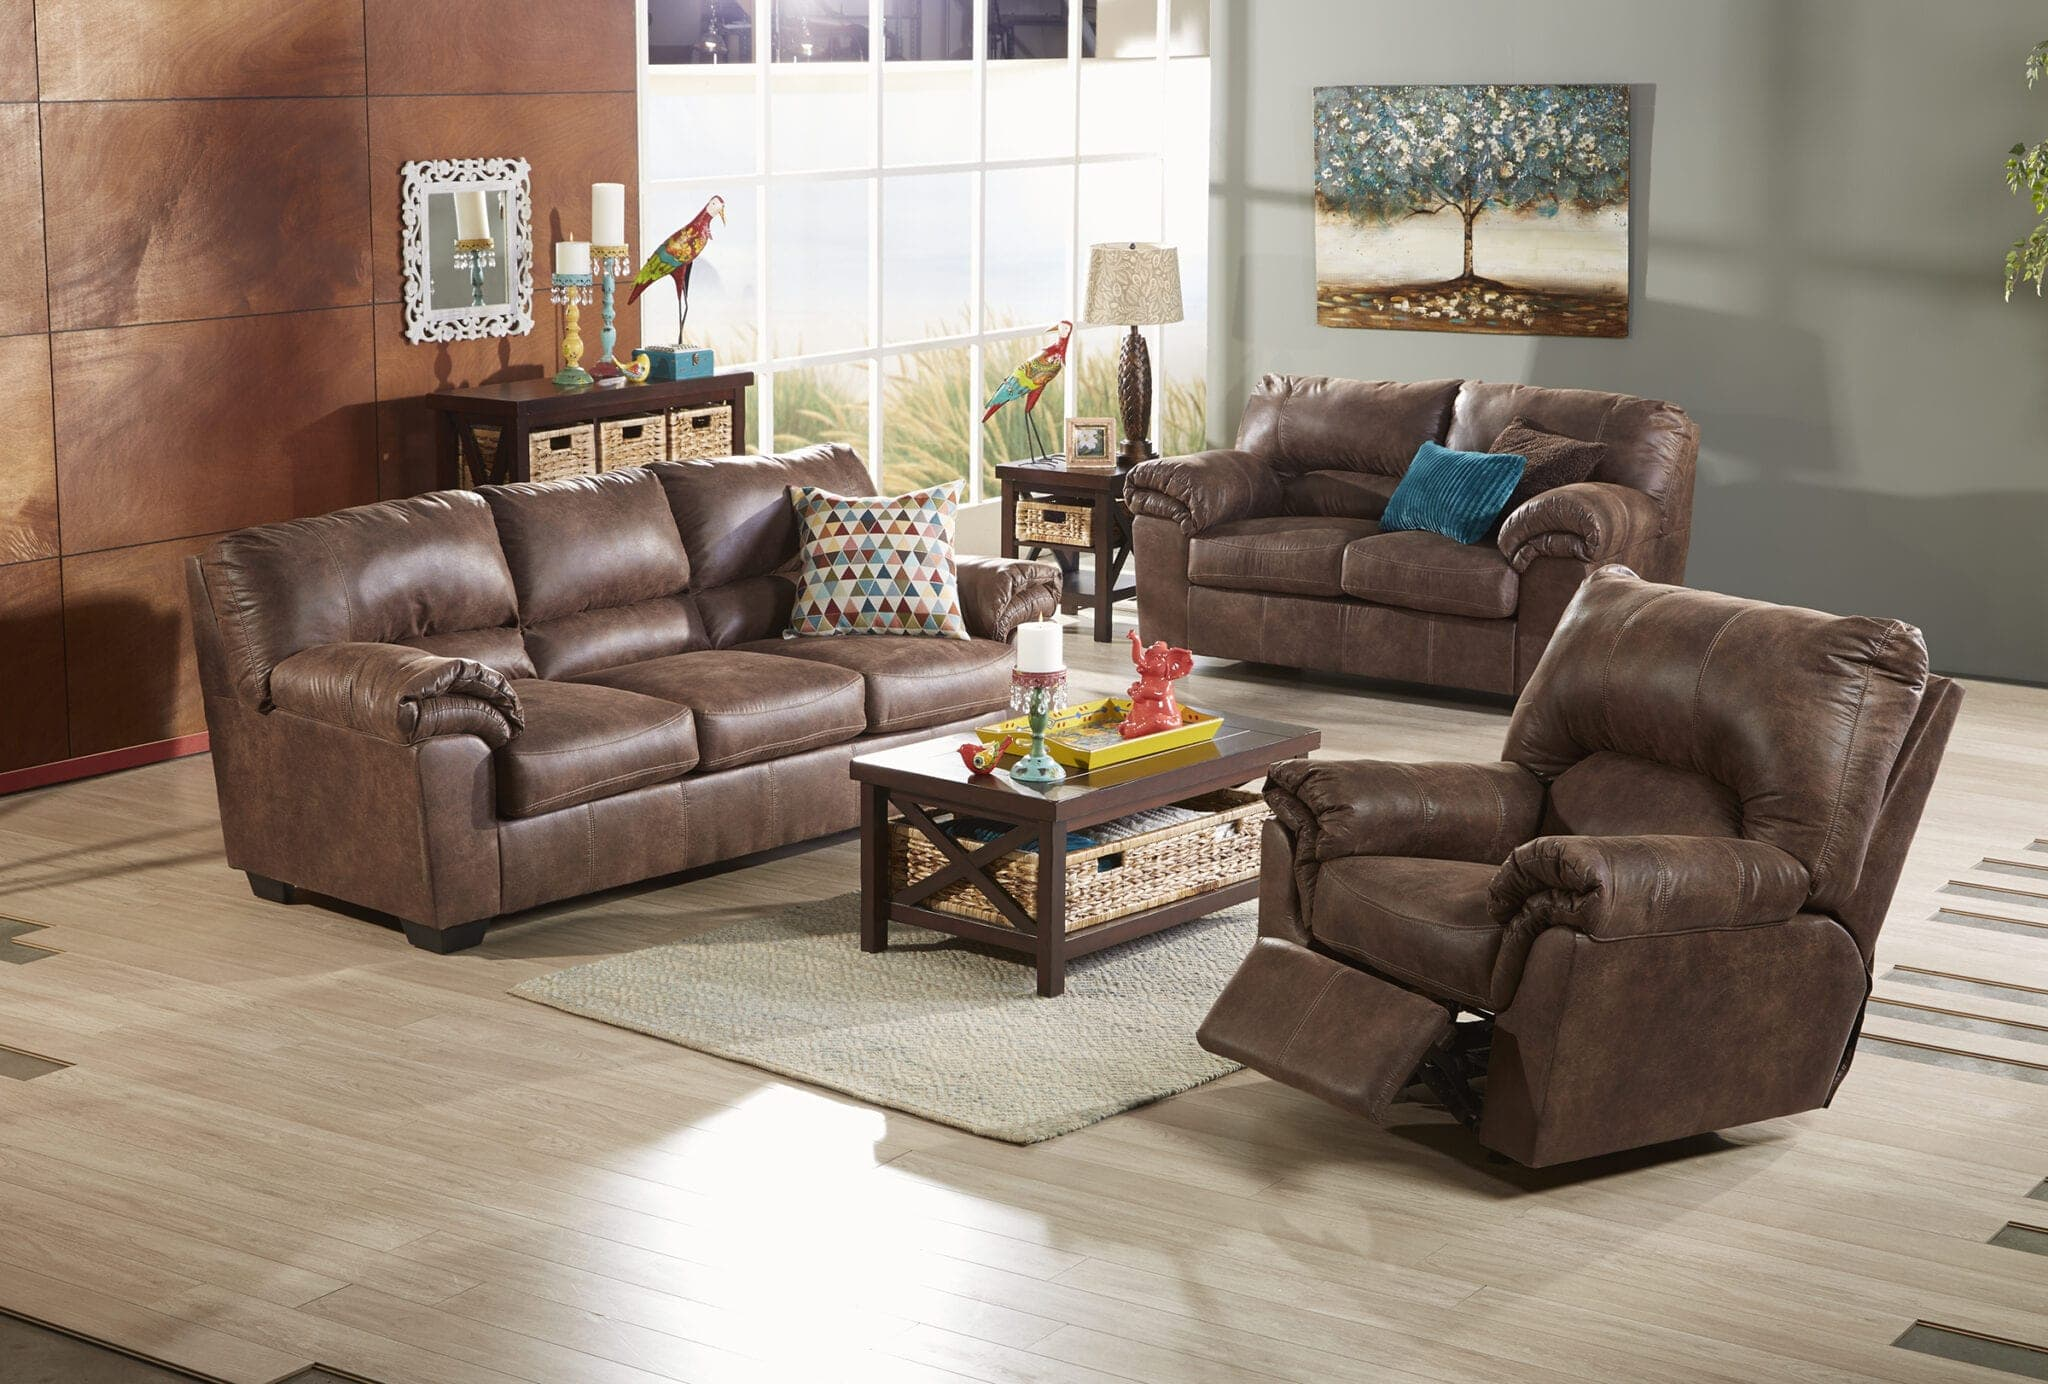 Pc Sofa Set Up Fred Meyer Truckload Furniture Event - Couches Under $300